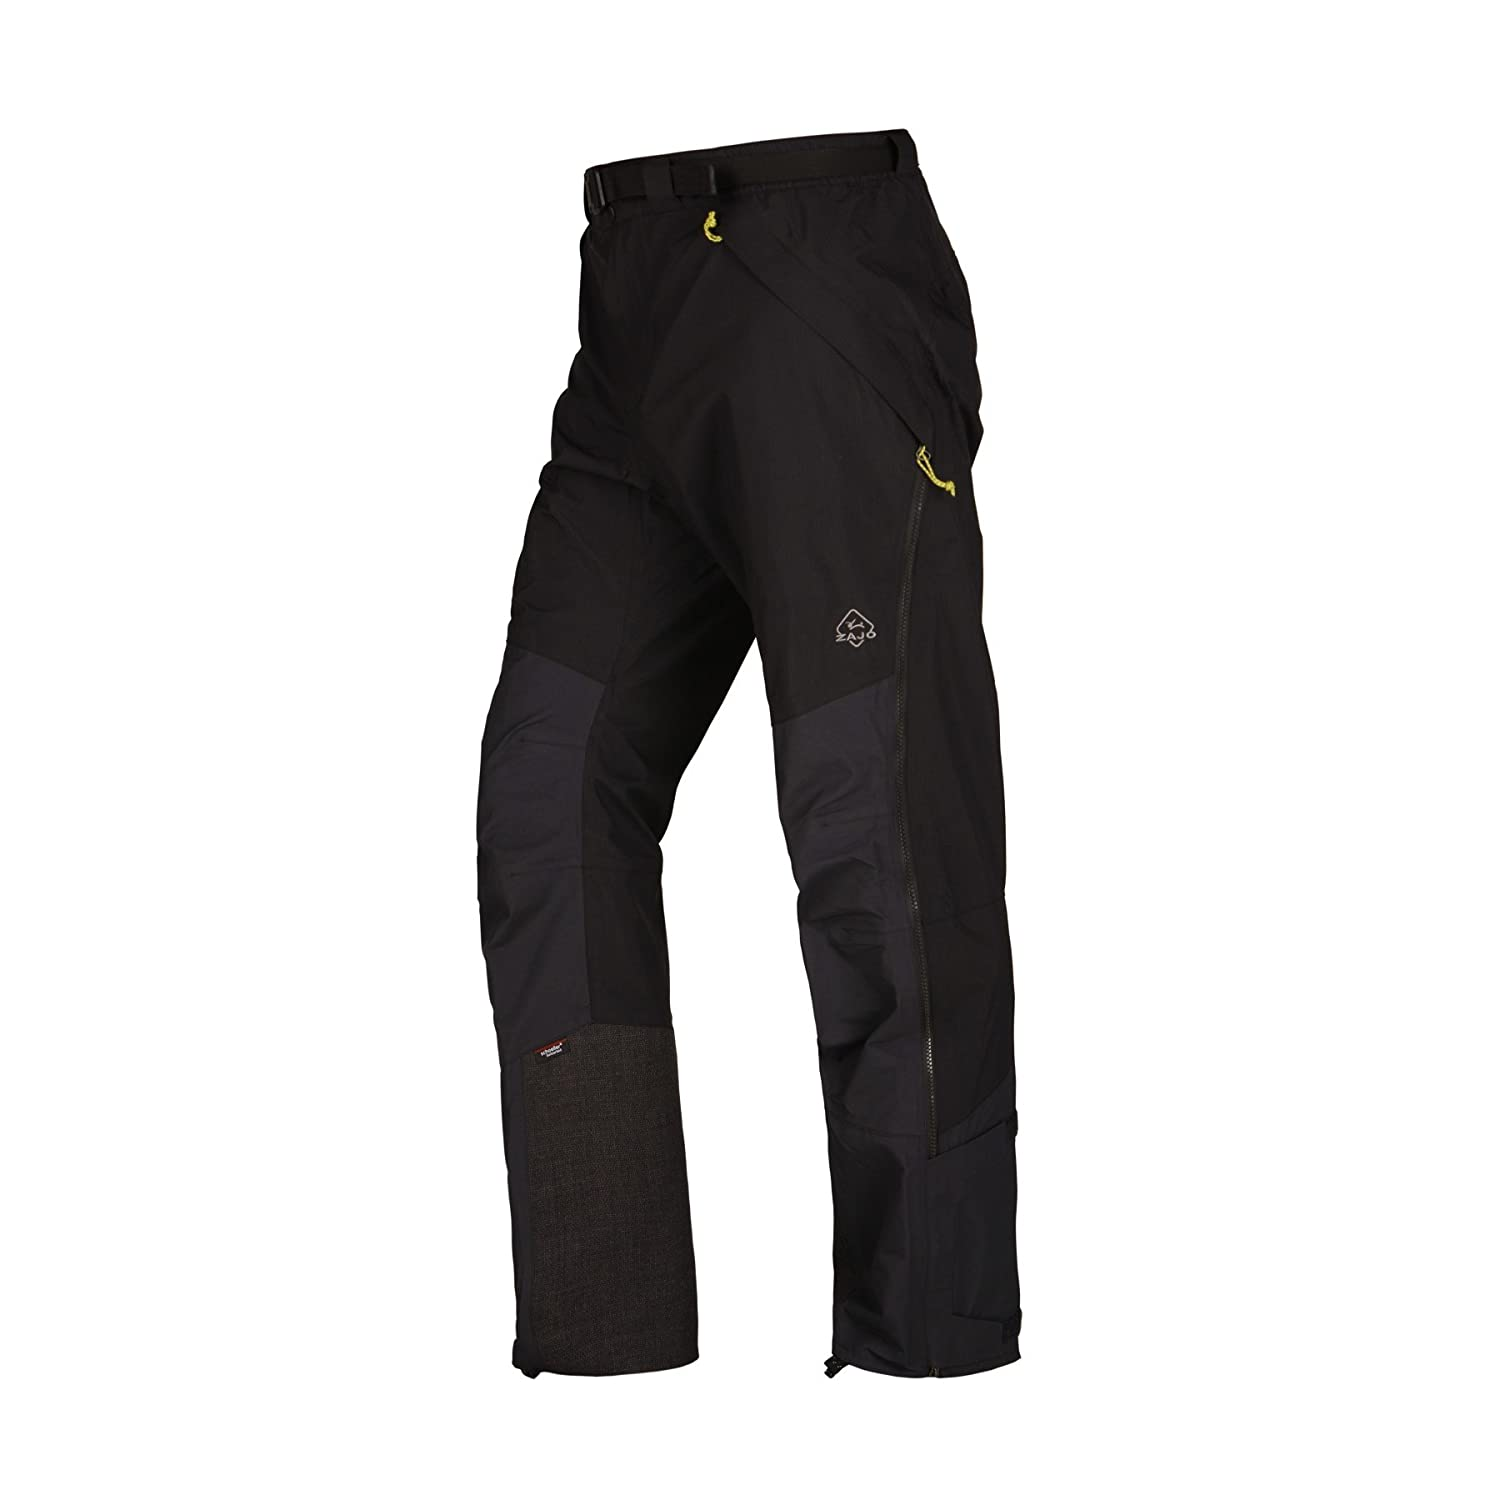 Karakorum Pants - eVent Waterproof Man Pants